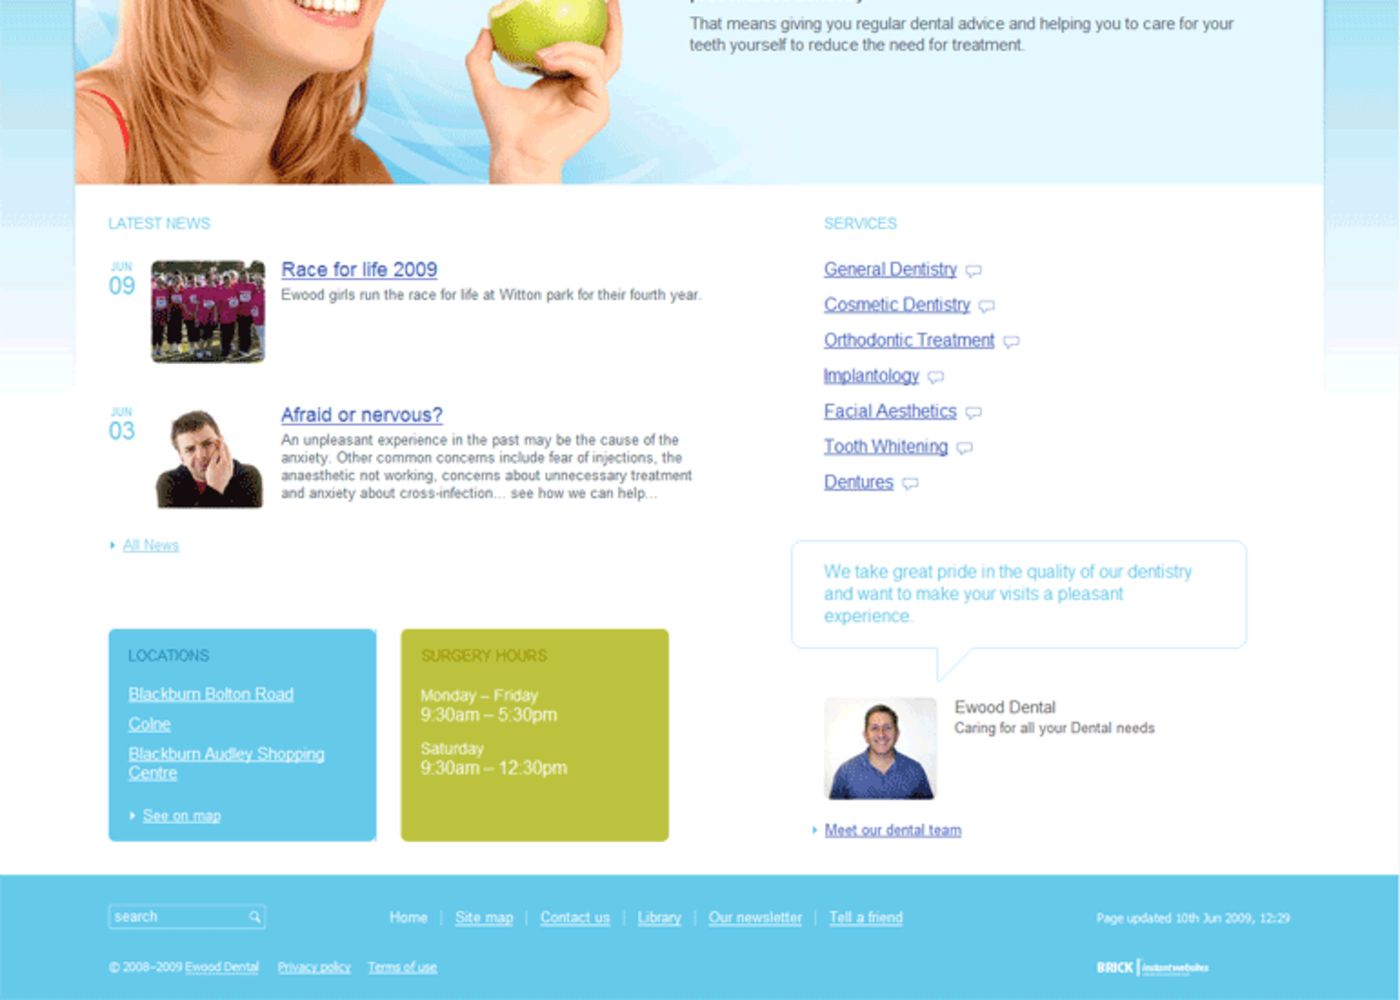 Ewood Dental 2009 Homepag  footer